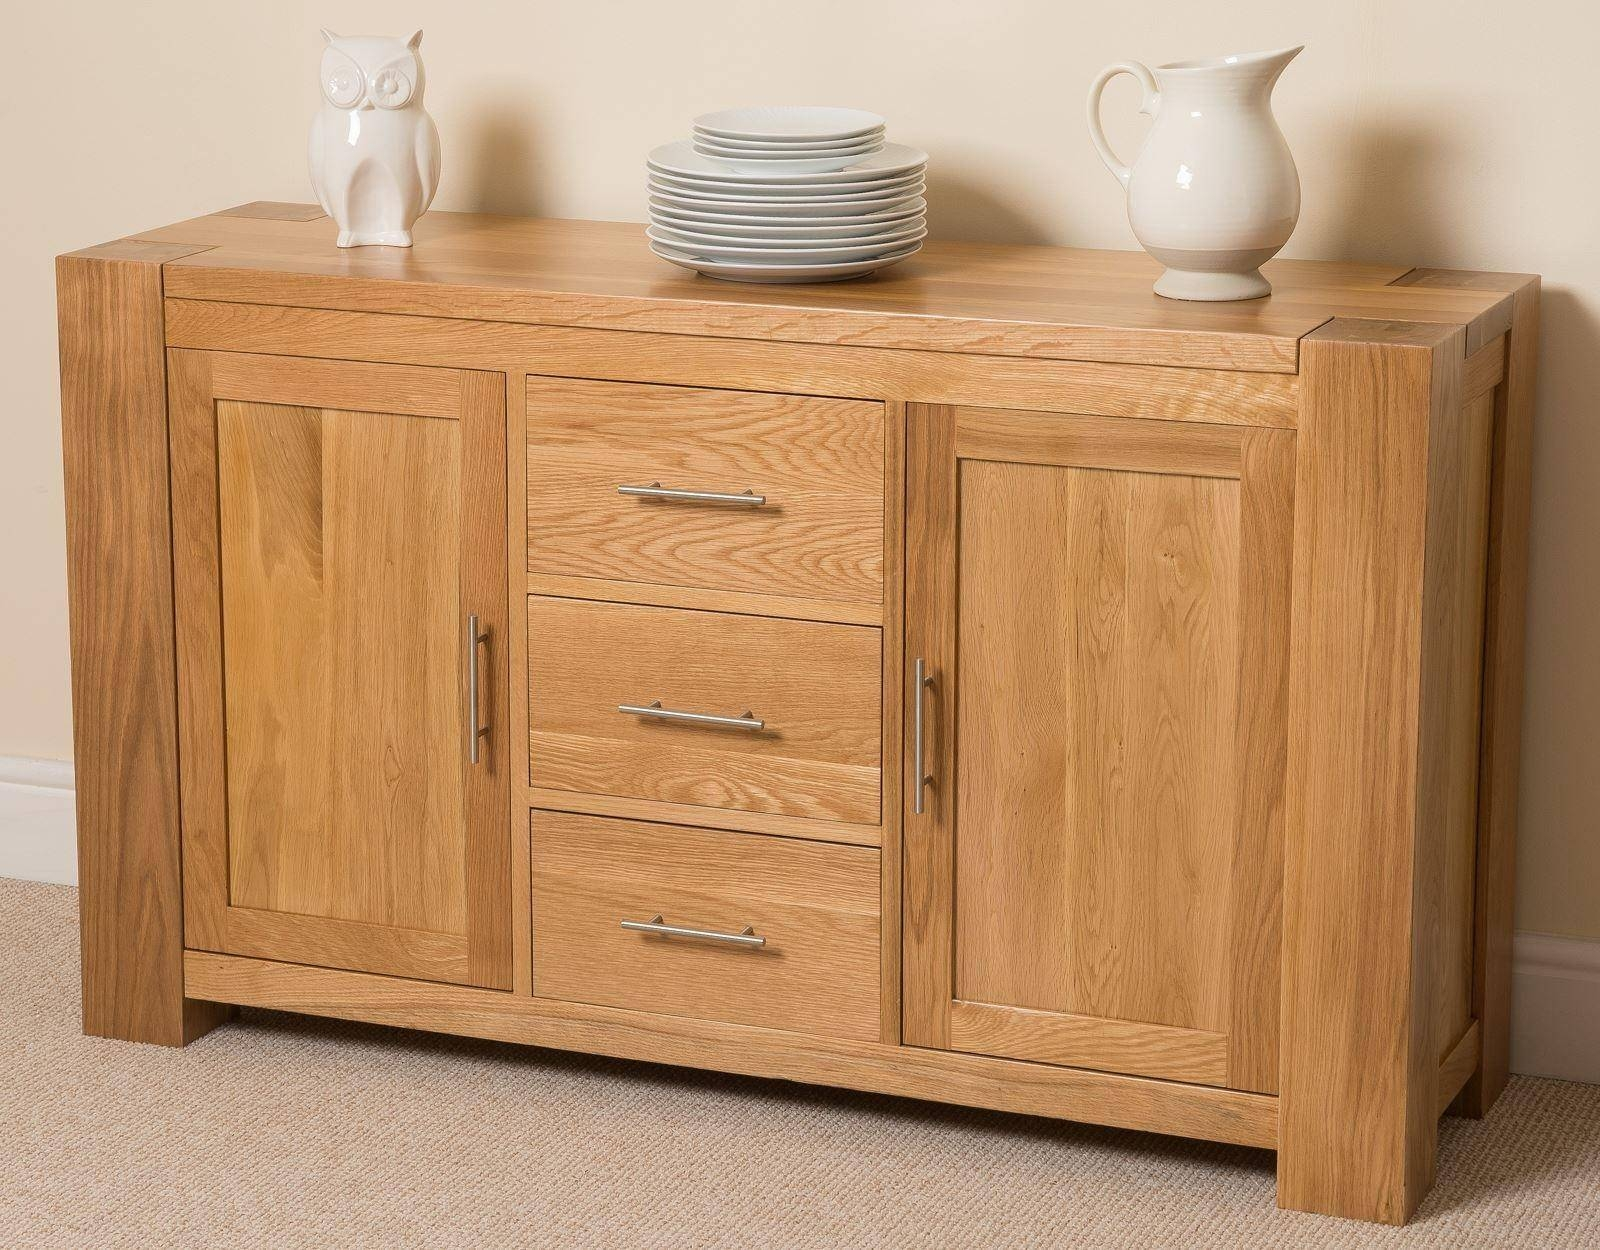 Classy Oak Sideboard Furniture | Wood Furniture Throughout Latest Solid Oak Sideboards (#3 of 15)